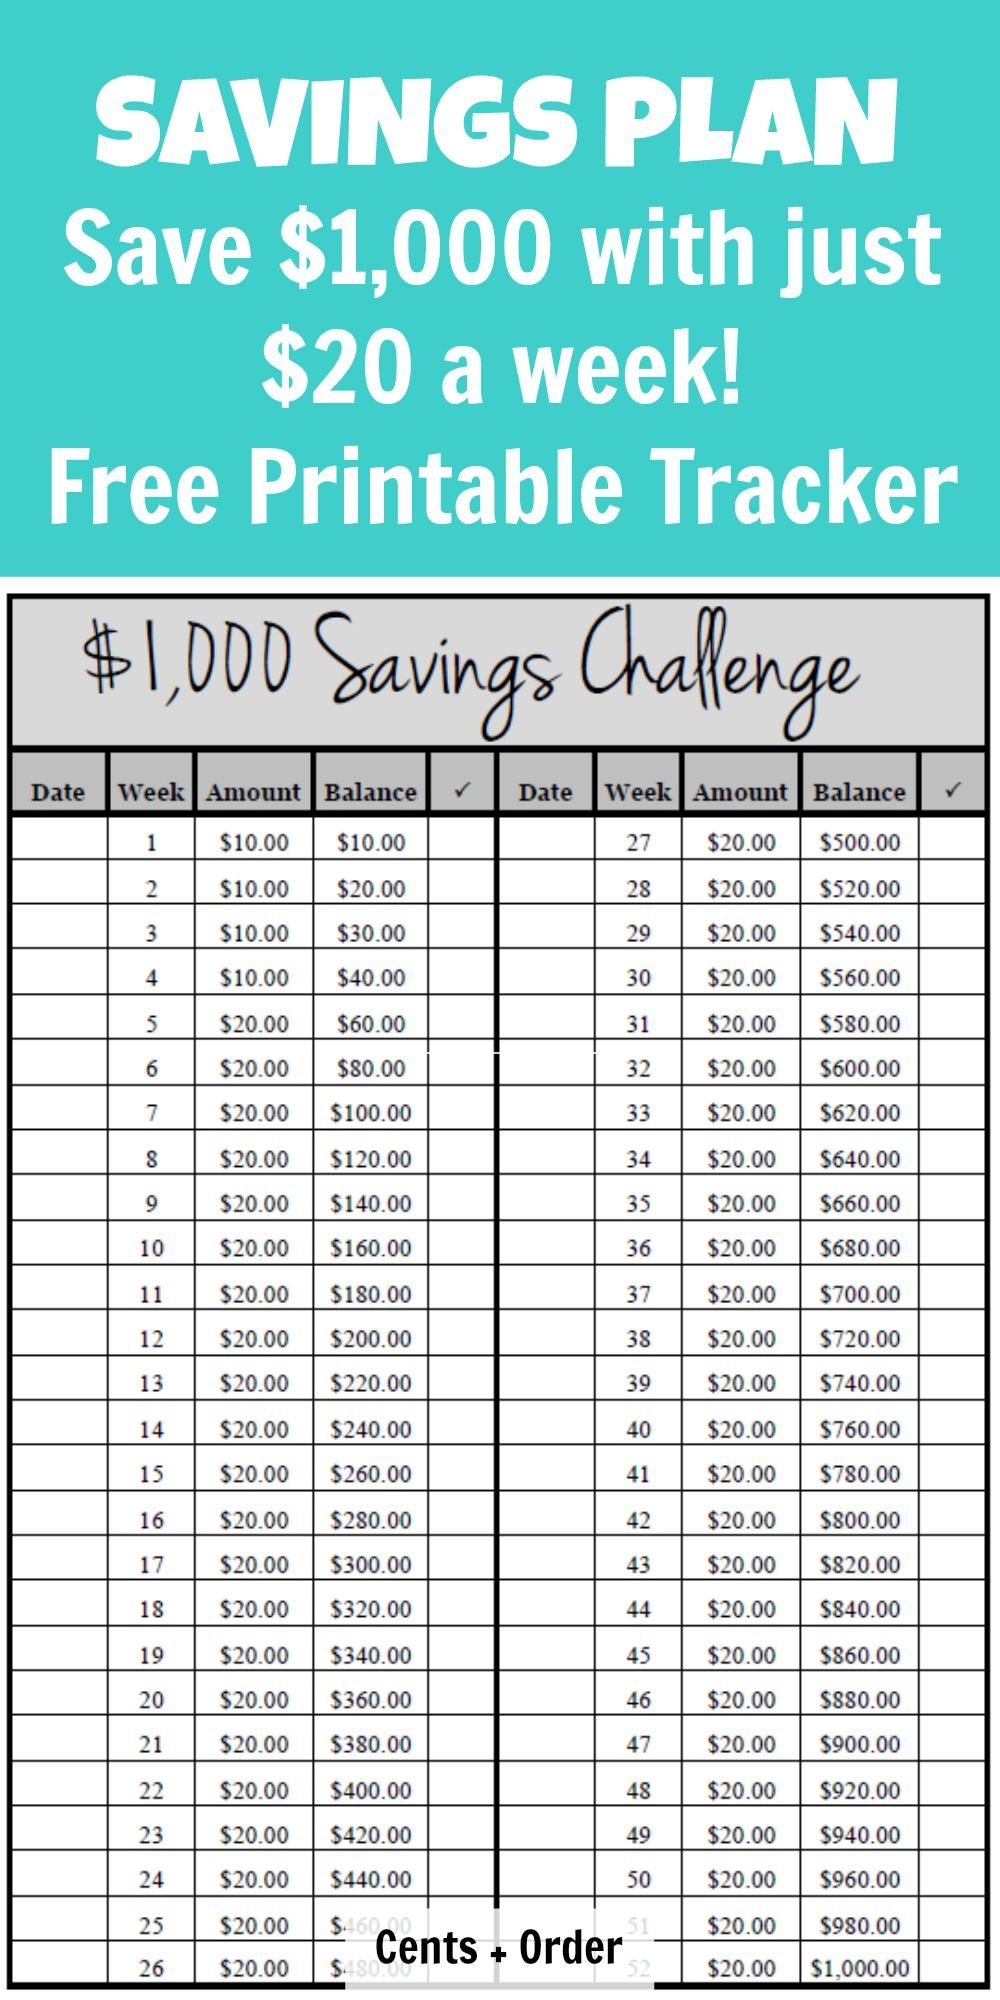 52 week 1000 savings plan build your emergency fund with this easy challenge of just 20 a week free printable tracker for your savings challenge